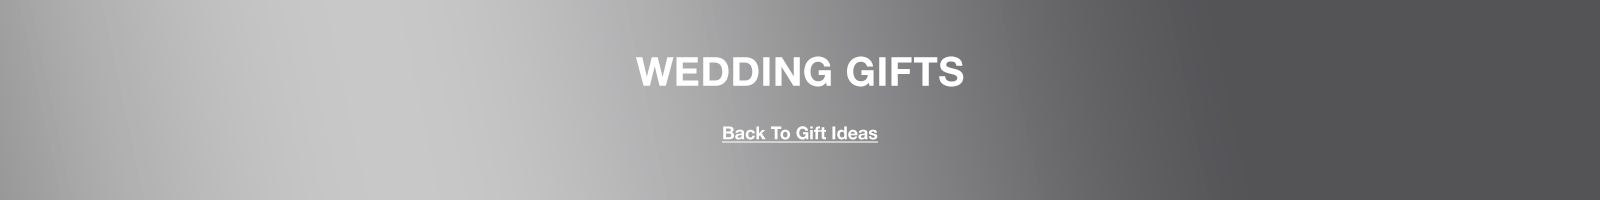 Wedding Gifts, Back to Gift Ideas